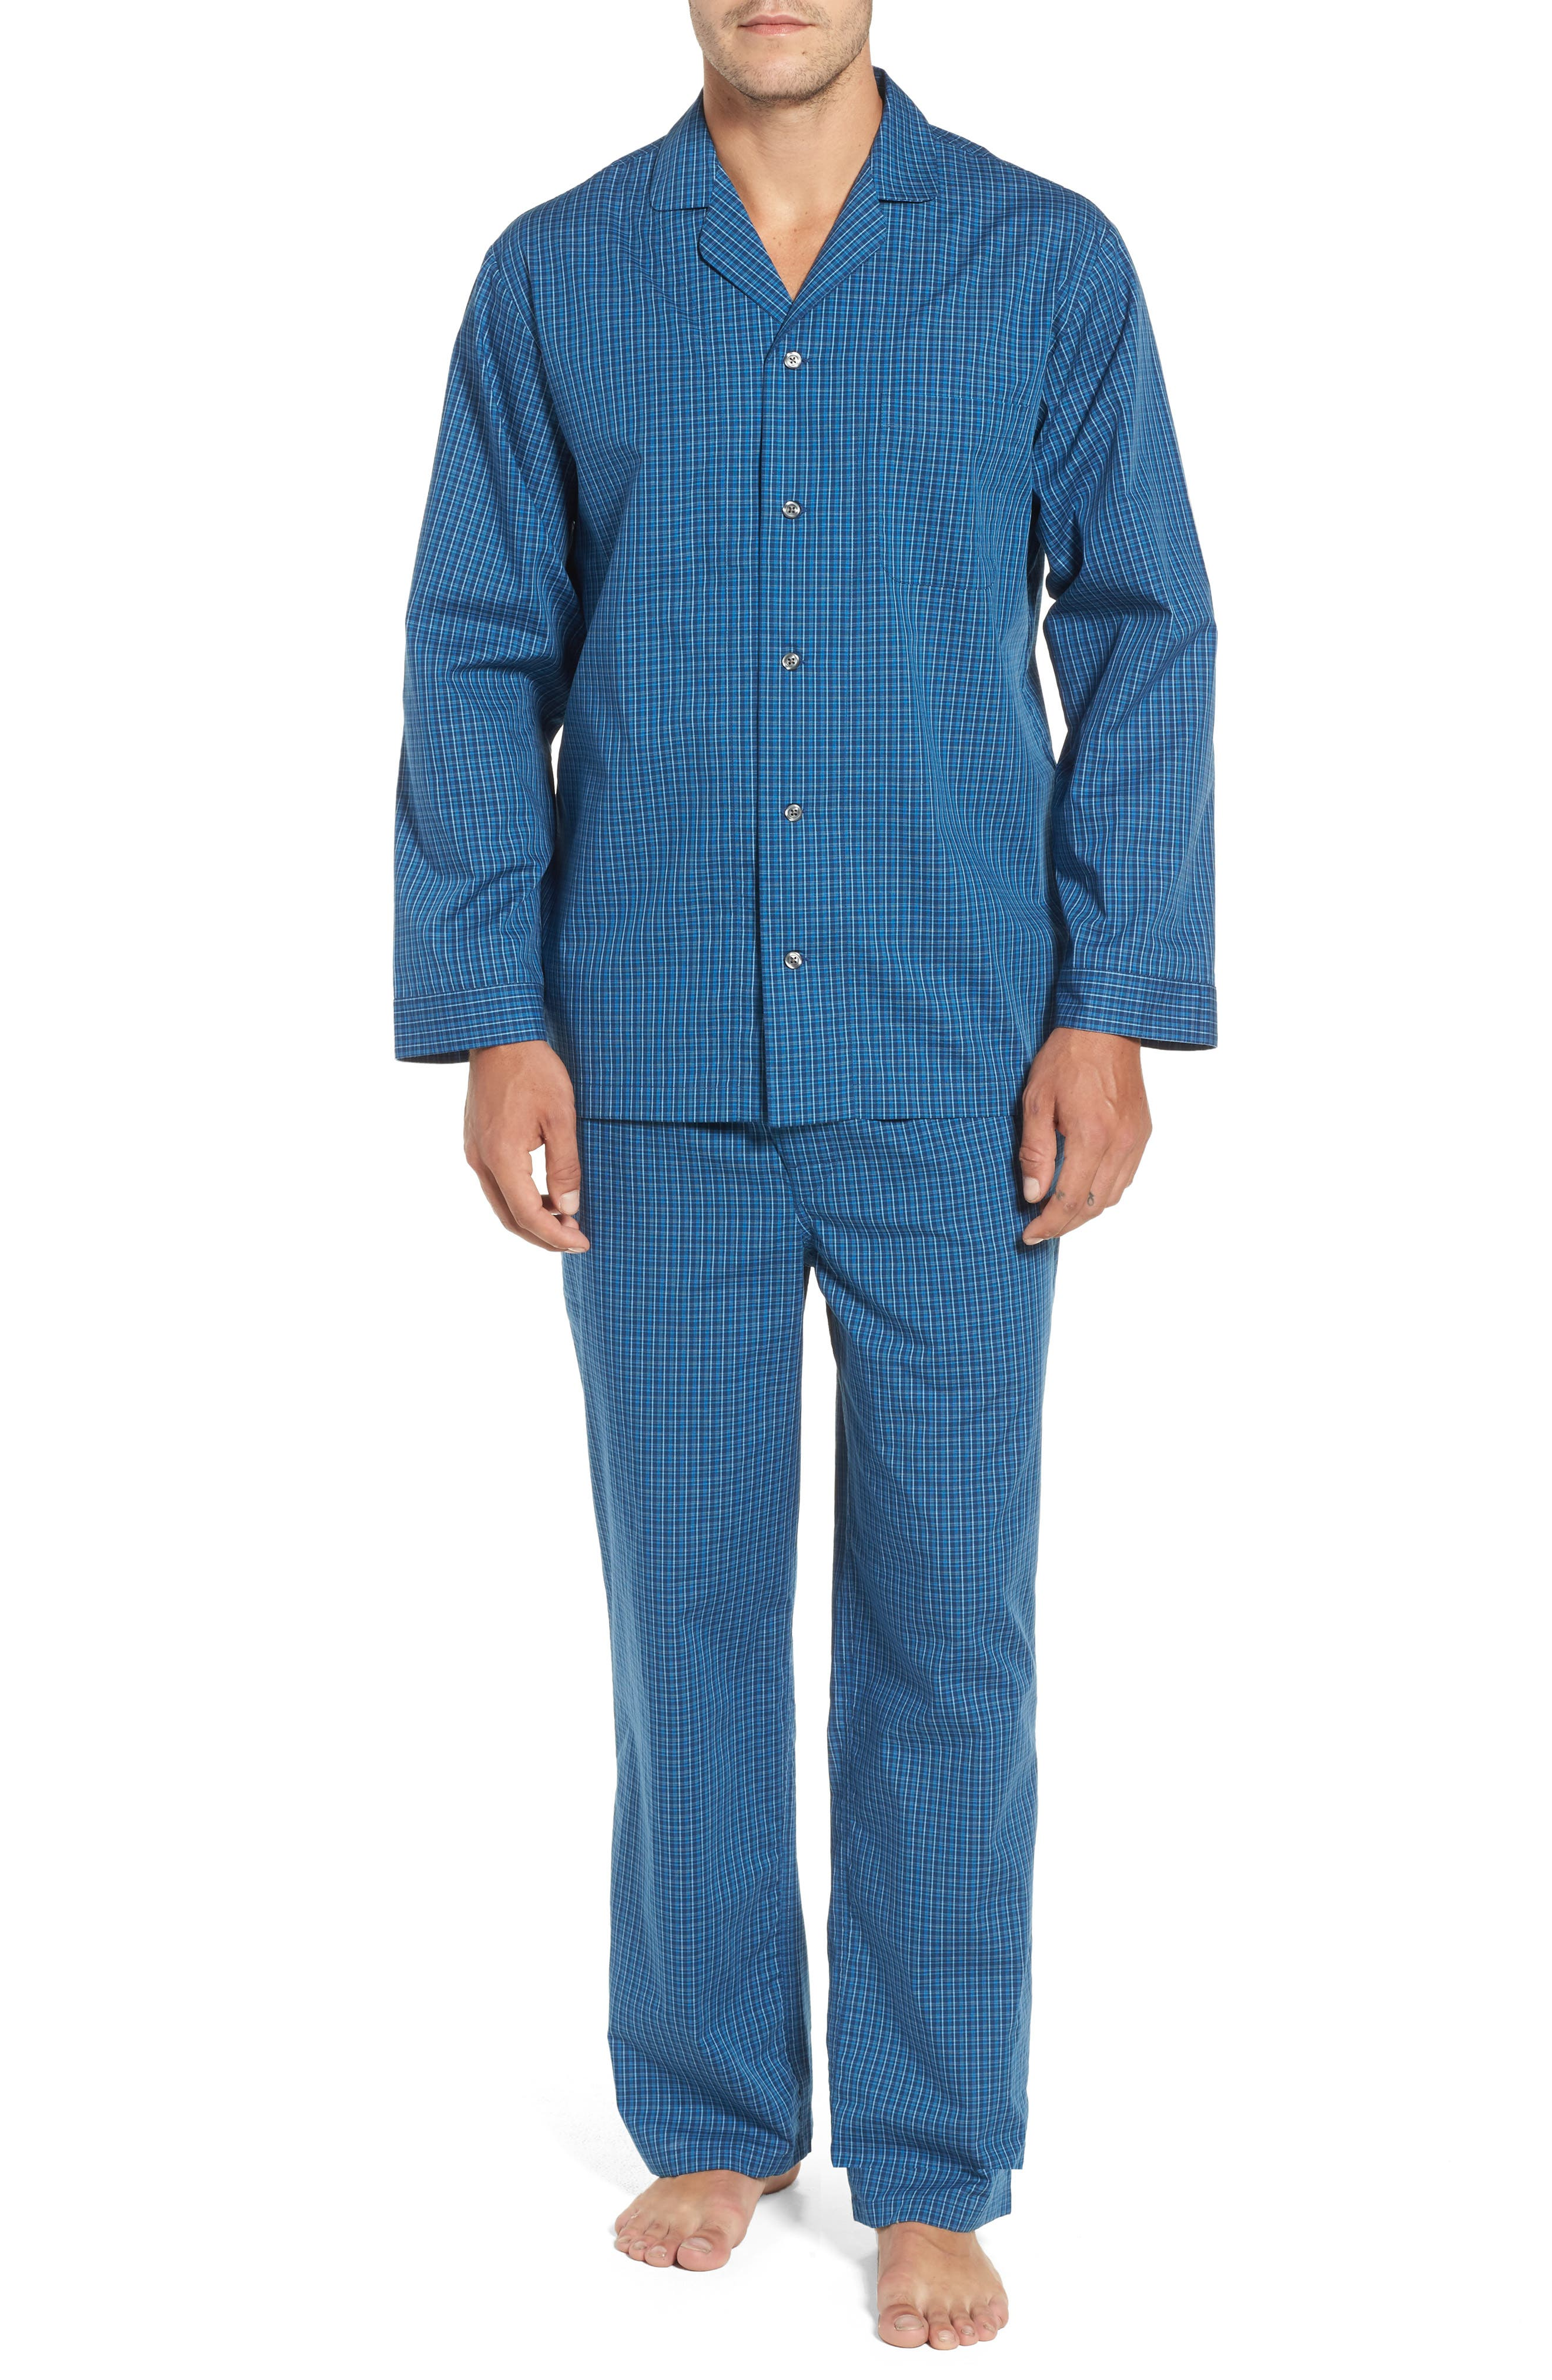 Poplin Pajama Set,                             Main thumbnail 1, color,                             Navy Medieval- Blue Plaid